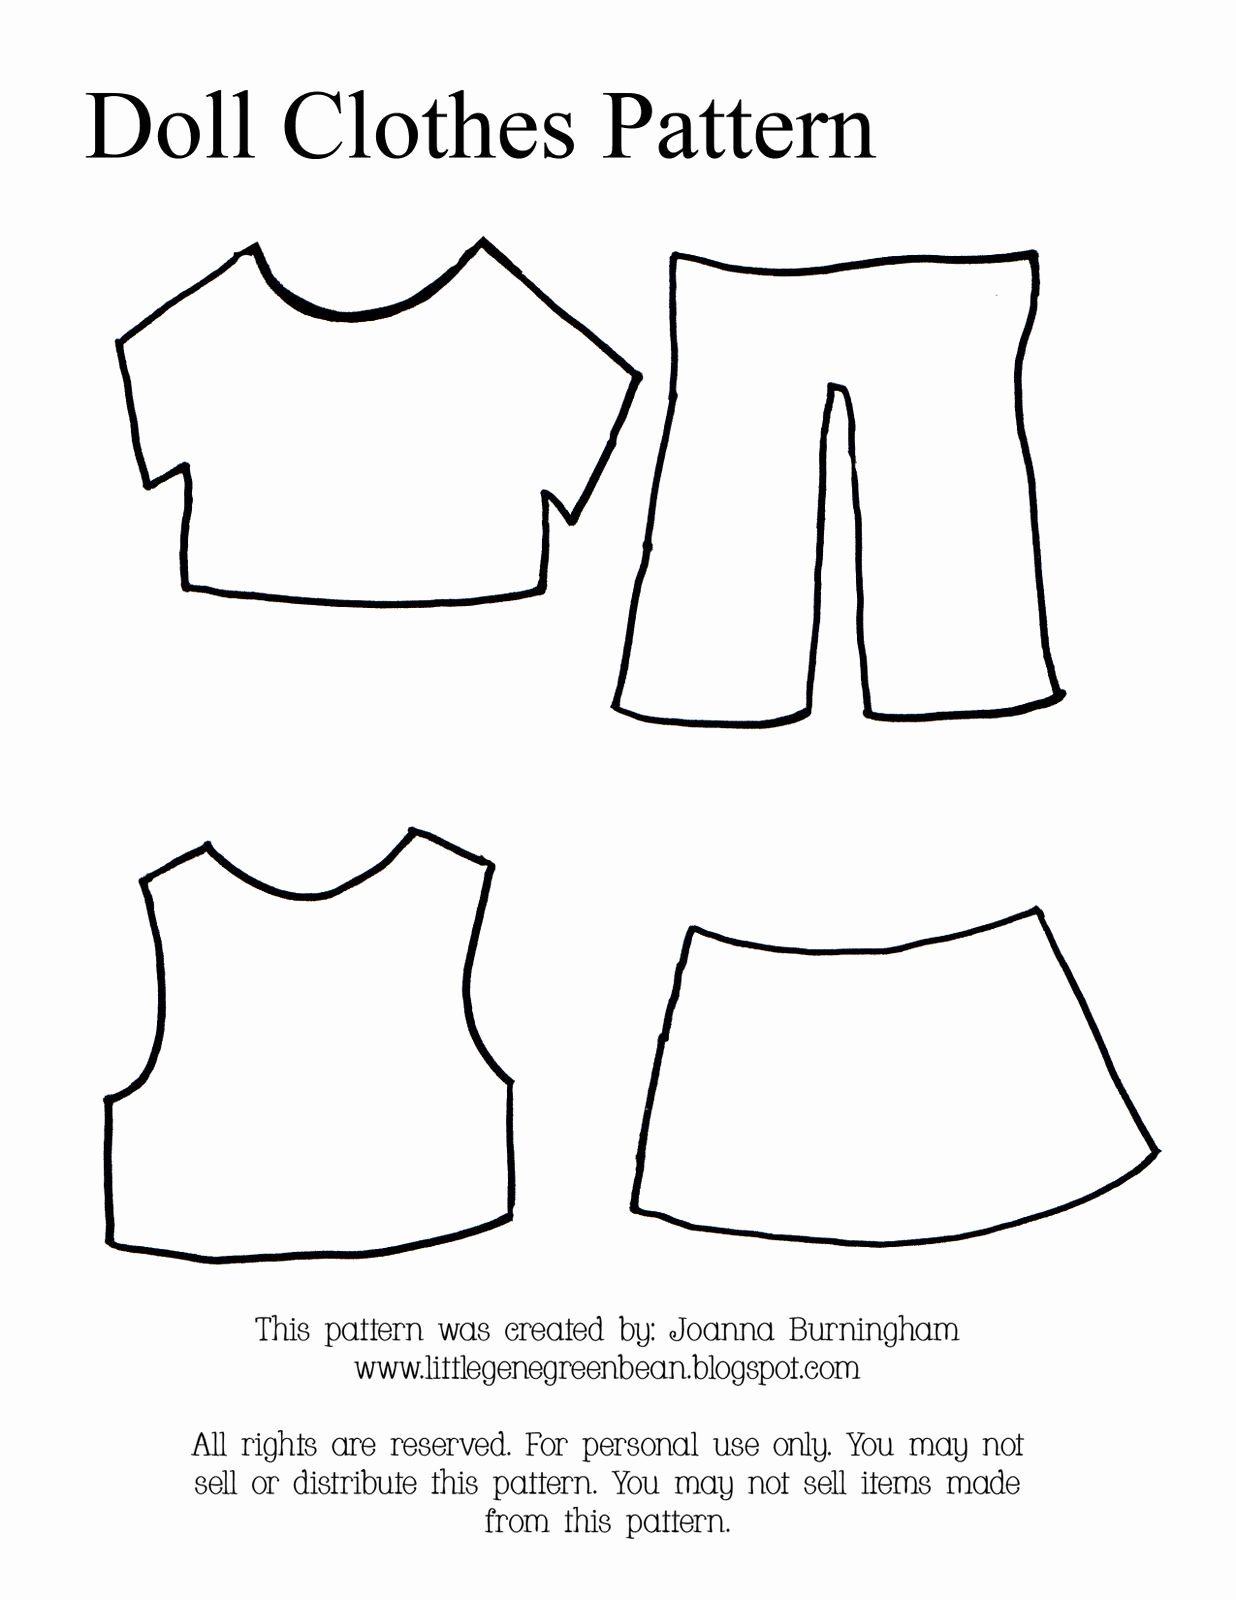 Paper Doll Clothes Template New Little Gene Green Bean Four Quick Easy and Cheap